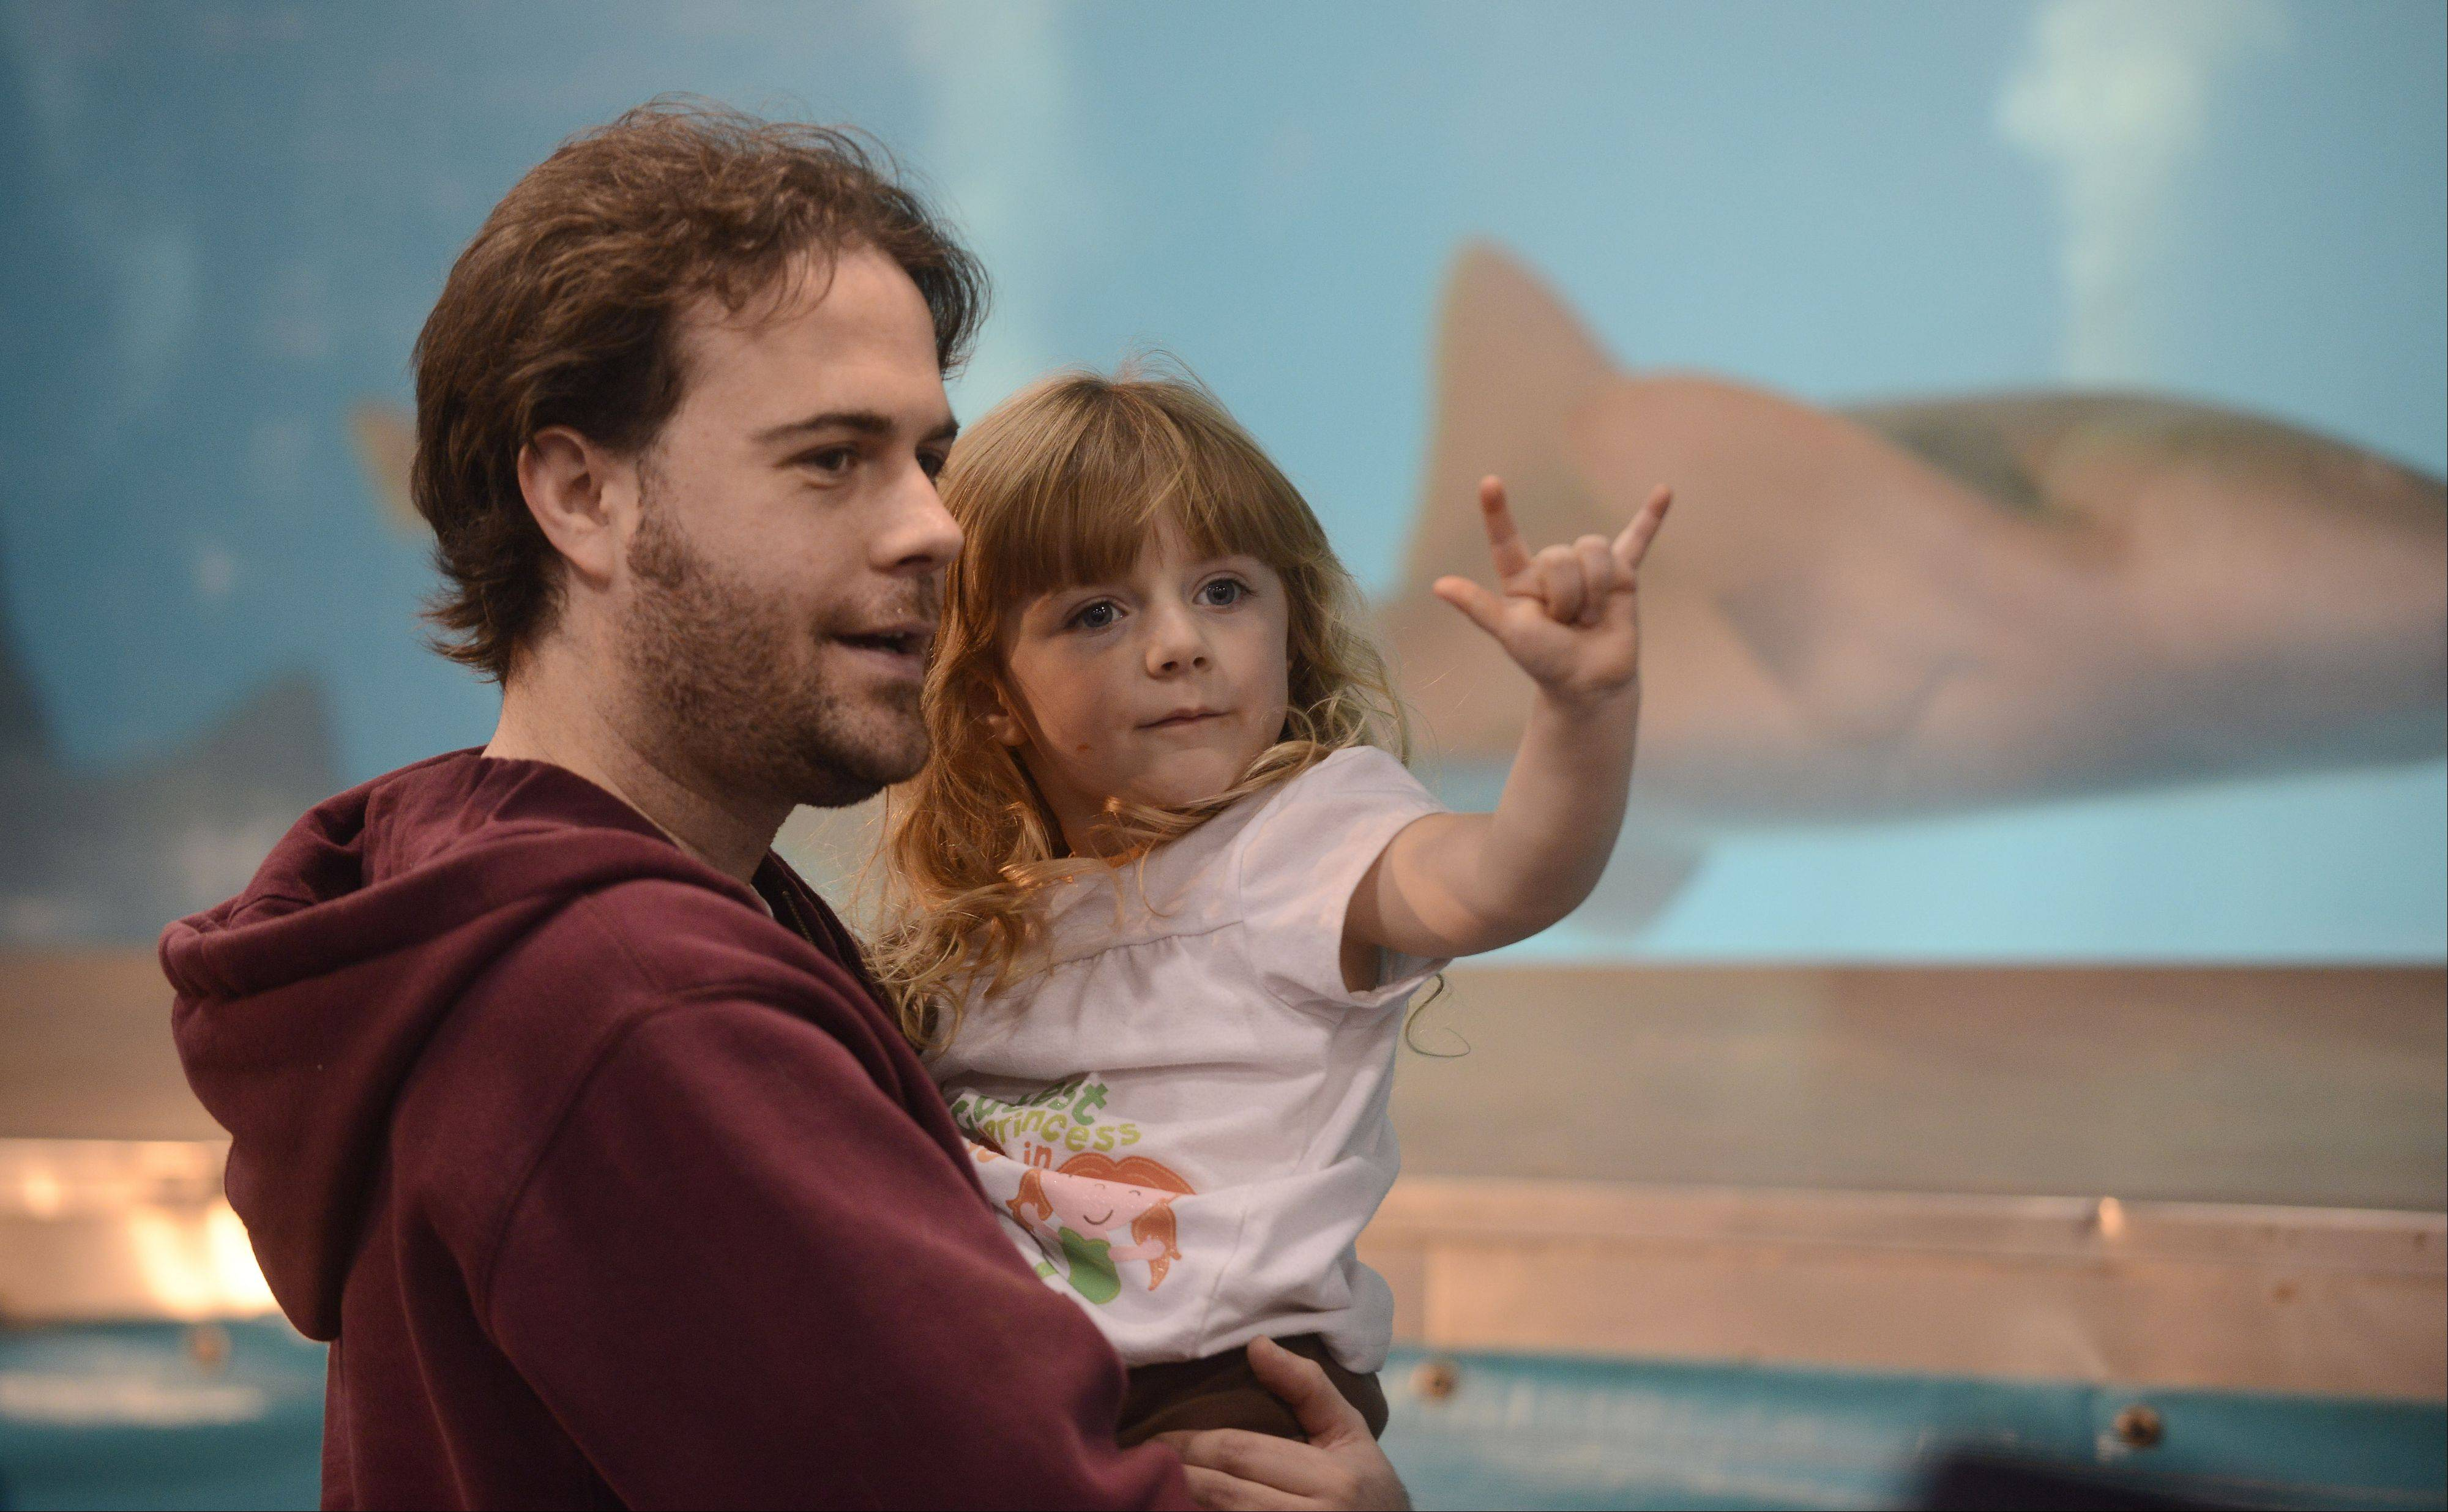 Jaymes Parker, of St. Charles, and his daughter, Lucinda, 3-1/2, view the shark tank during the Chicago Aquatic Experience Show, held at the Renaissance Schaumburg Convention Center Saturday.